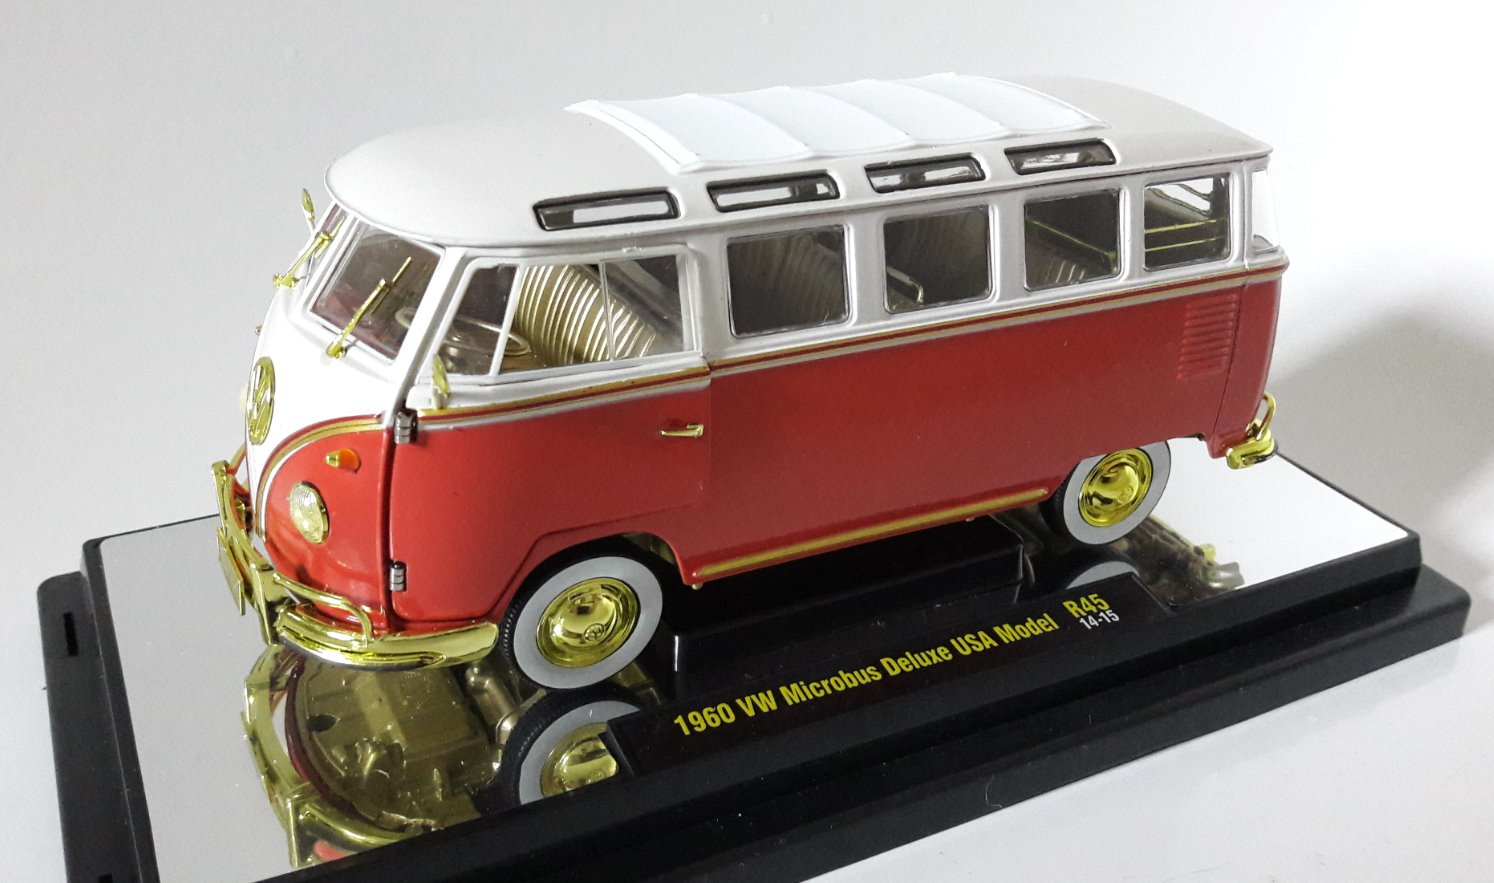 VW Microbus Deluxe USA Model Toy Car, Die Cast, And Hot Wheels (1960) front image (front cover)